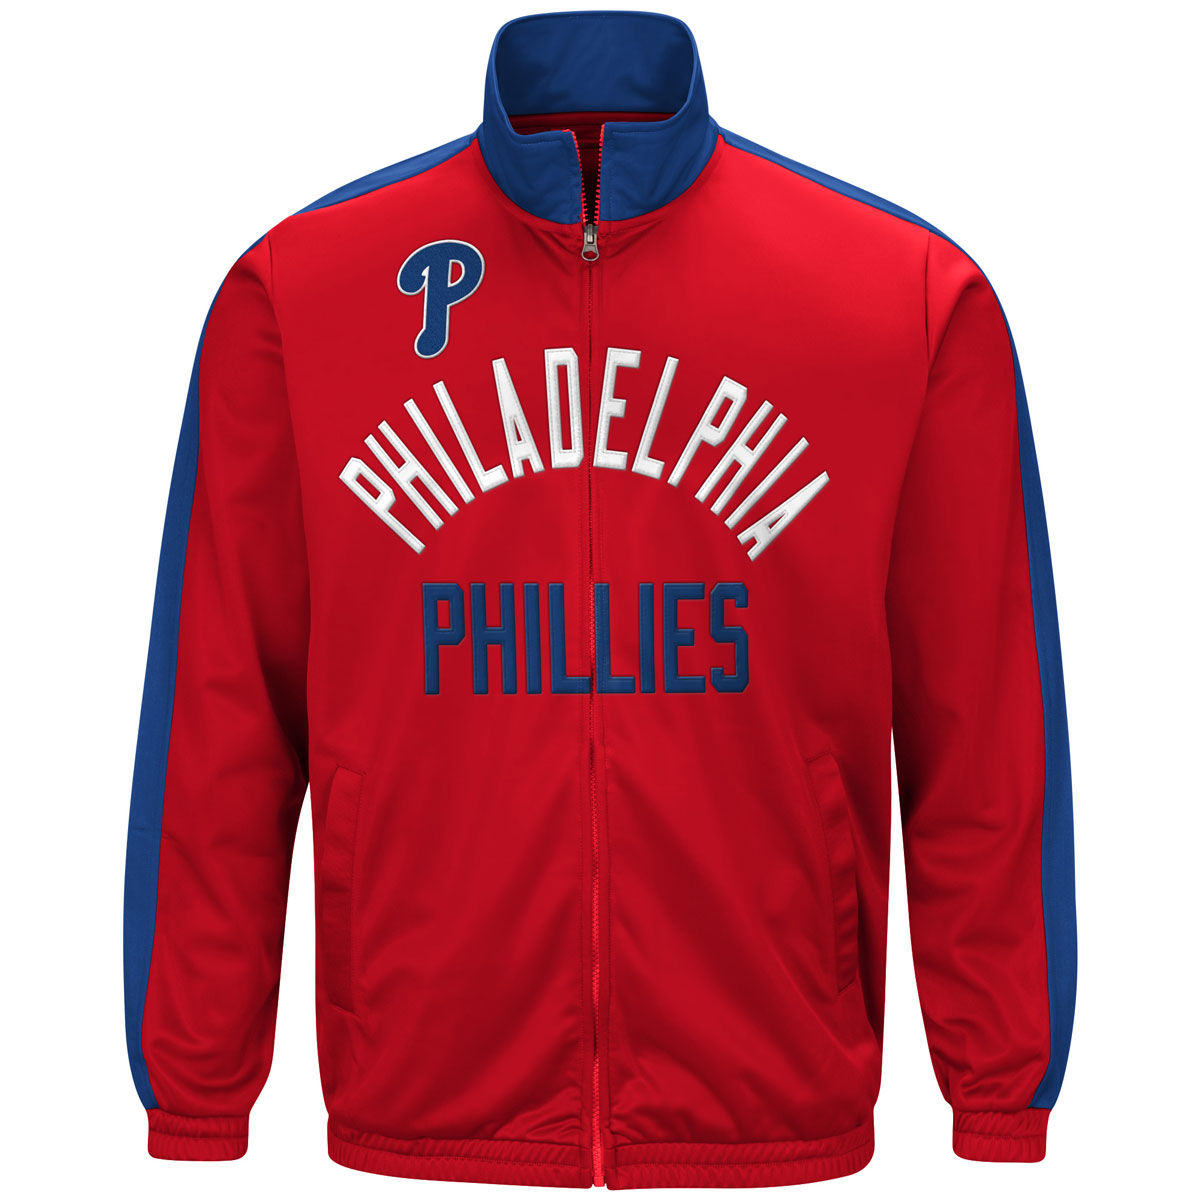 Philadelphia Phillies Adult Starter Track Jacket